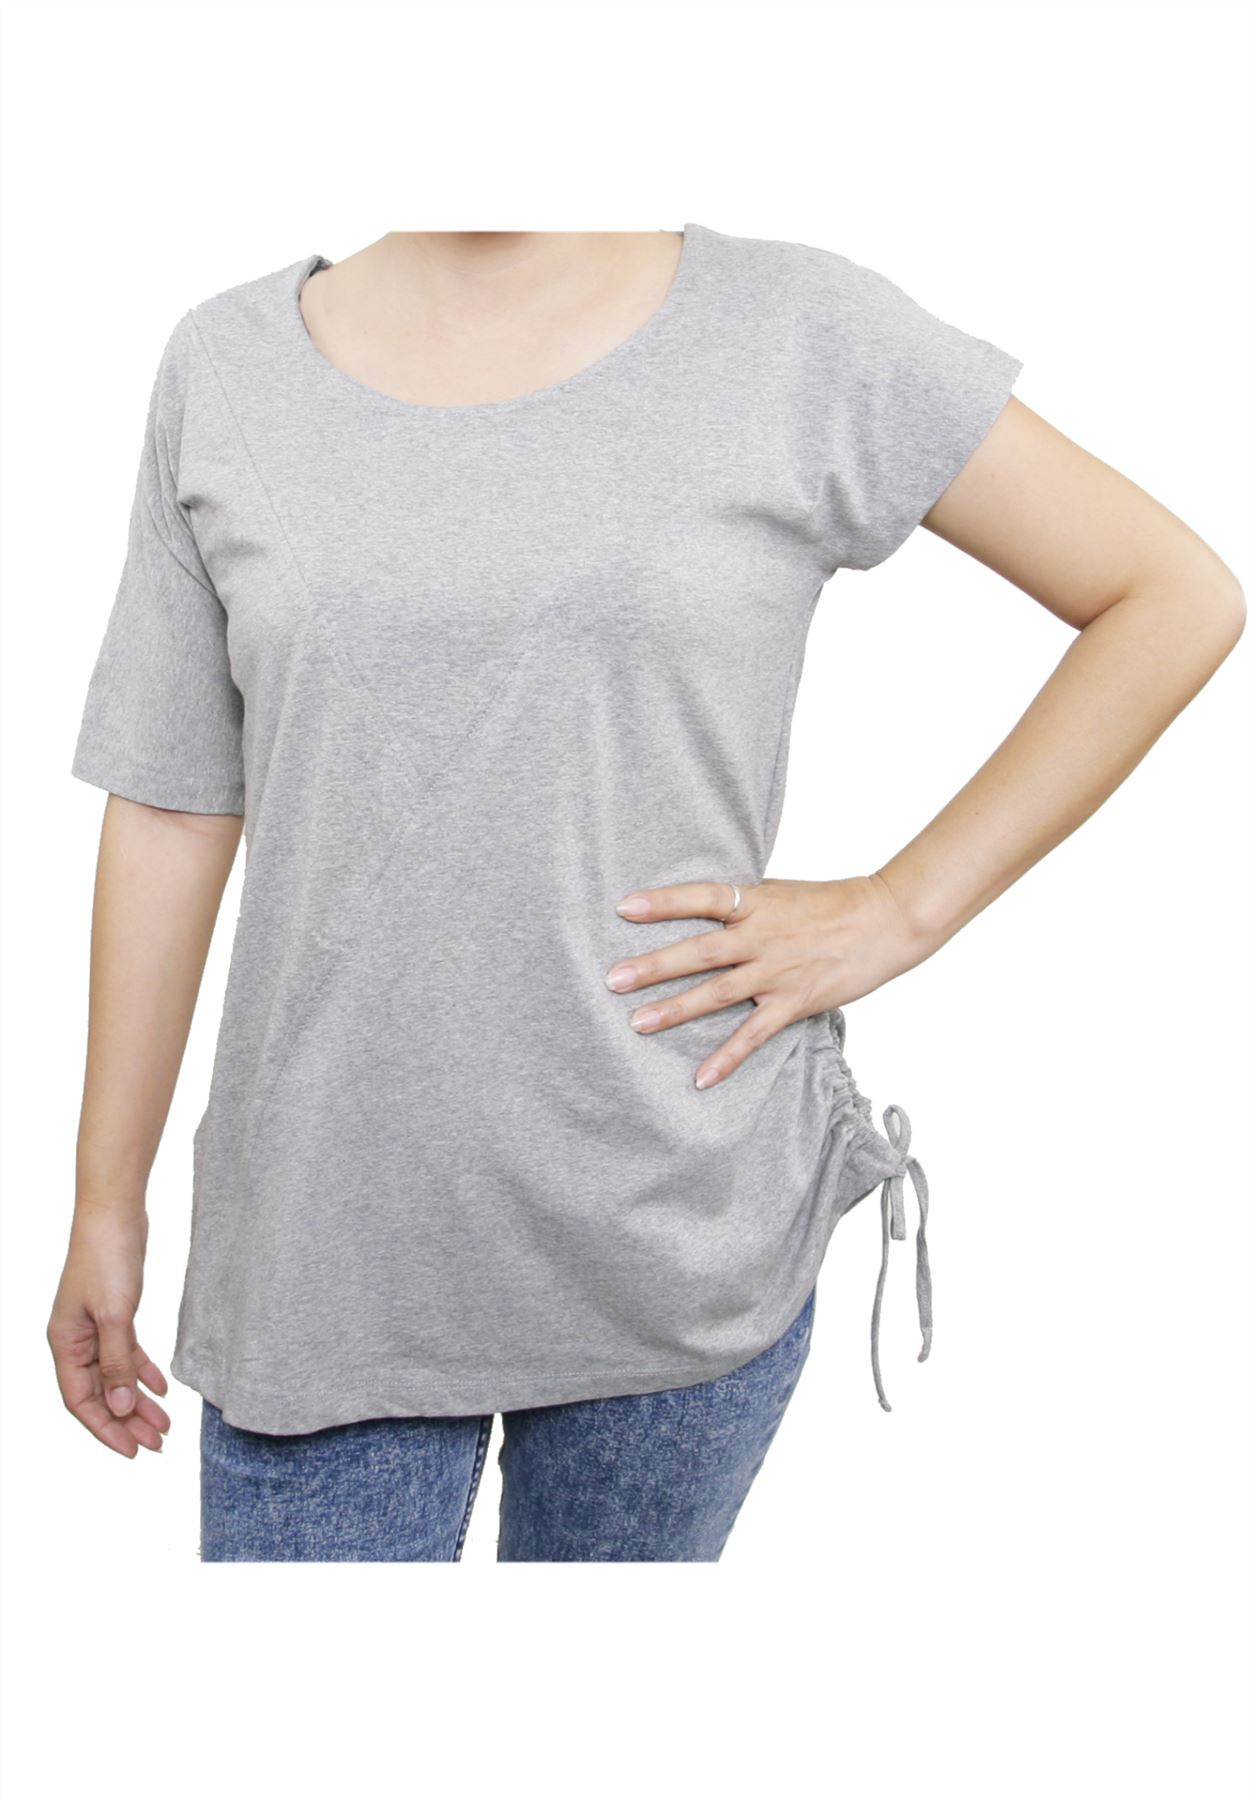 Going out clothes for women